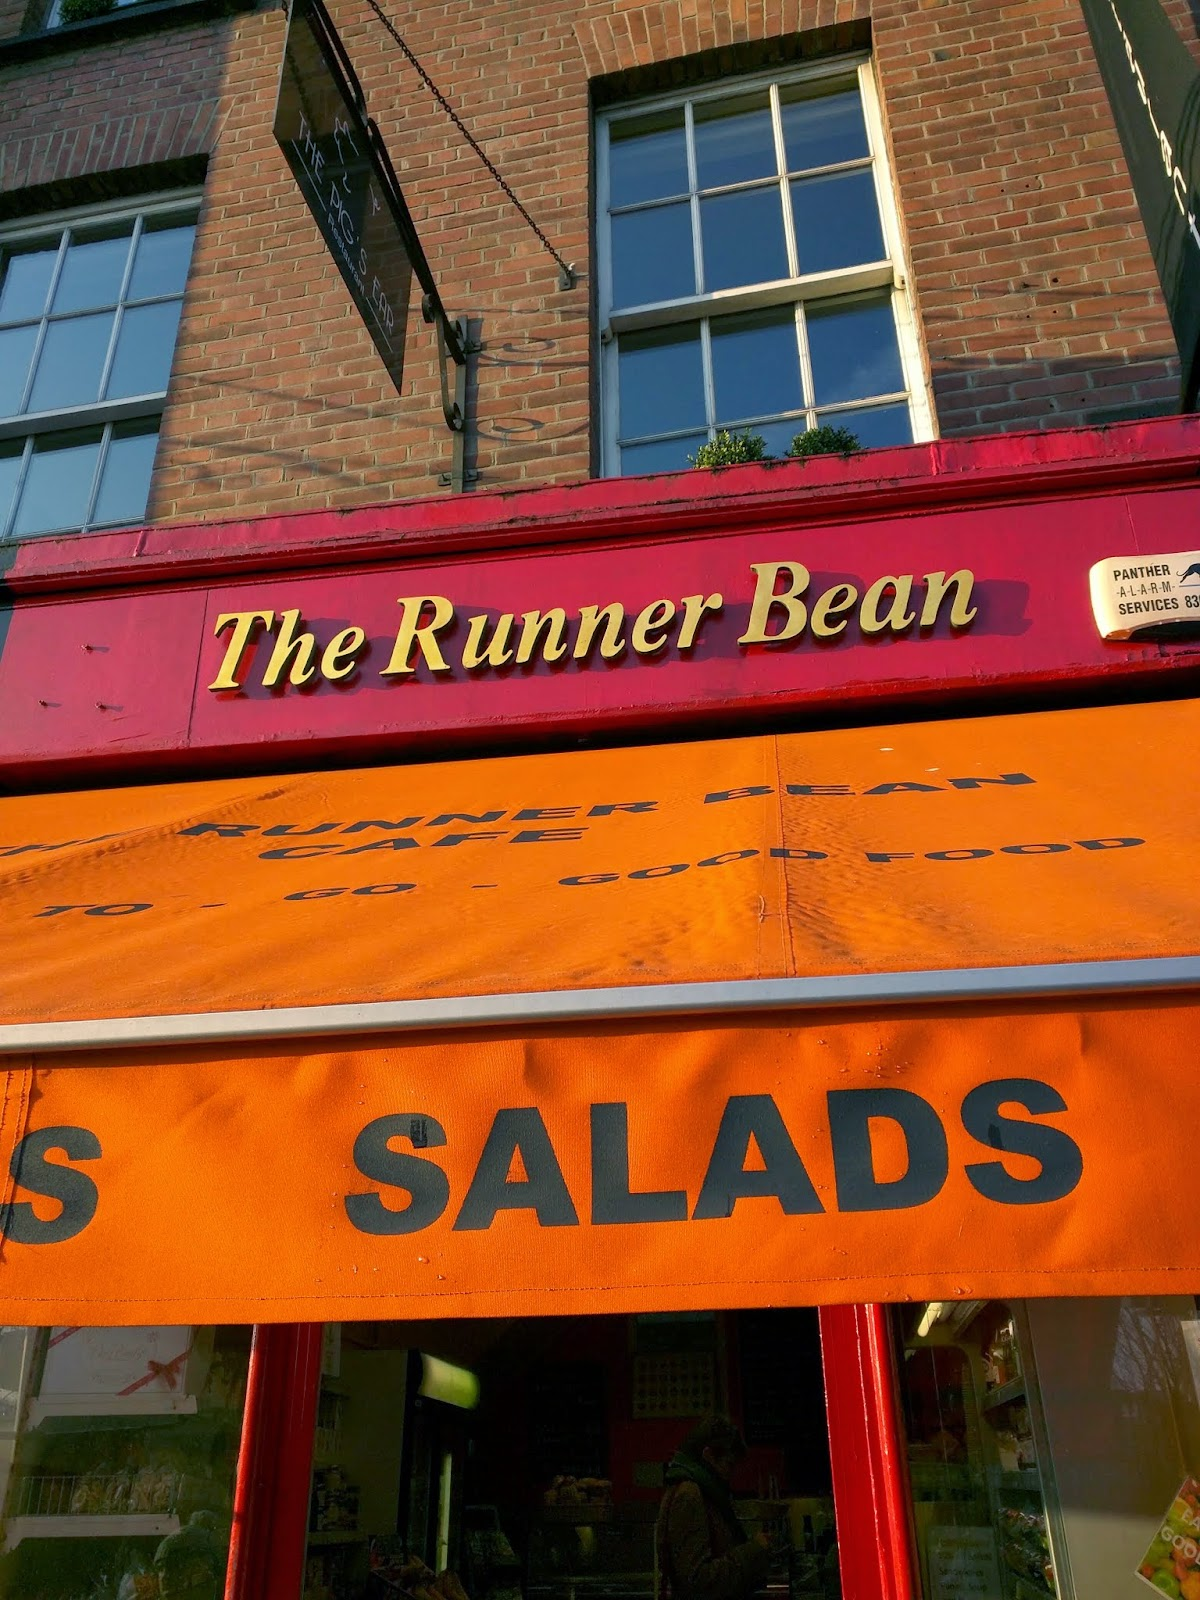 The Runner Bean in Dublin